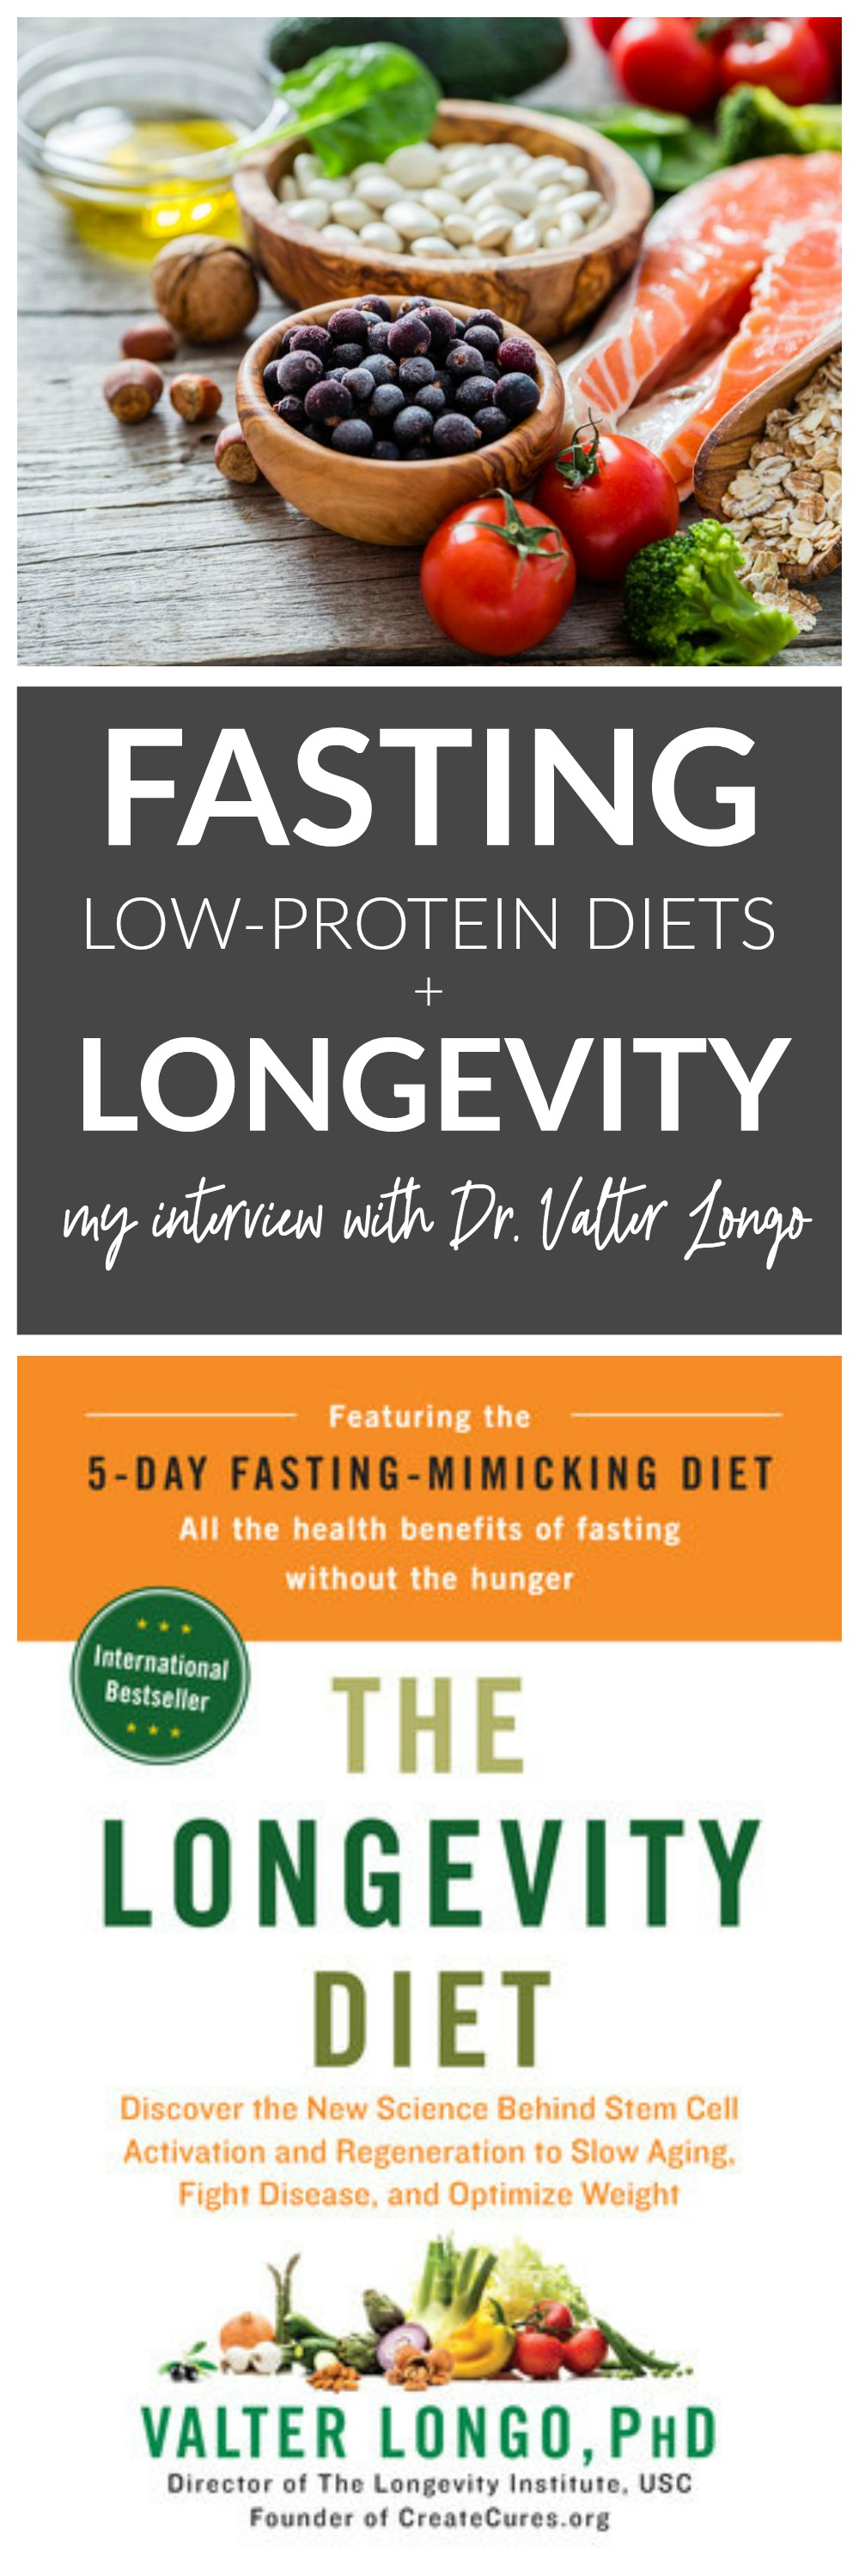 Valter Longo on Fasting, Low-Protein Diets, and Longevity - Whitney E. RD